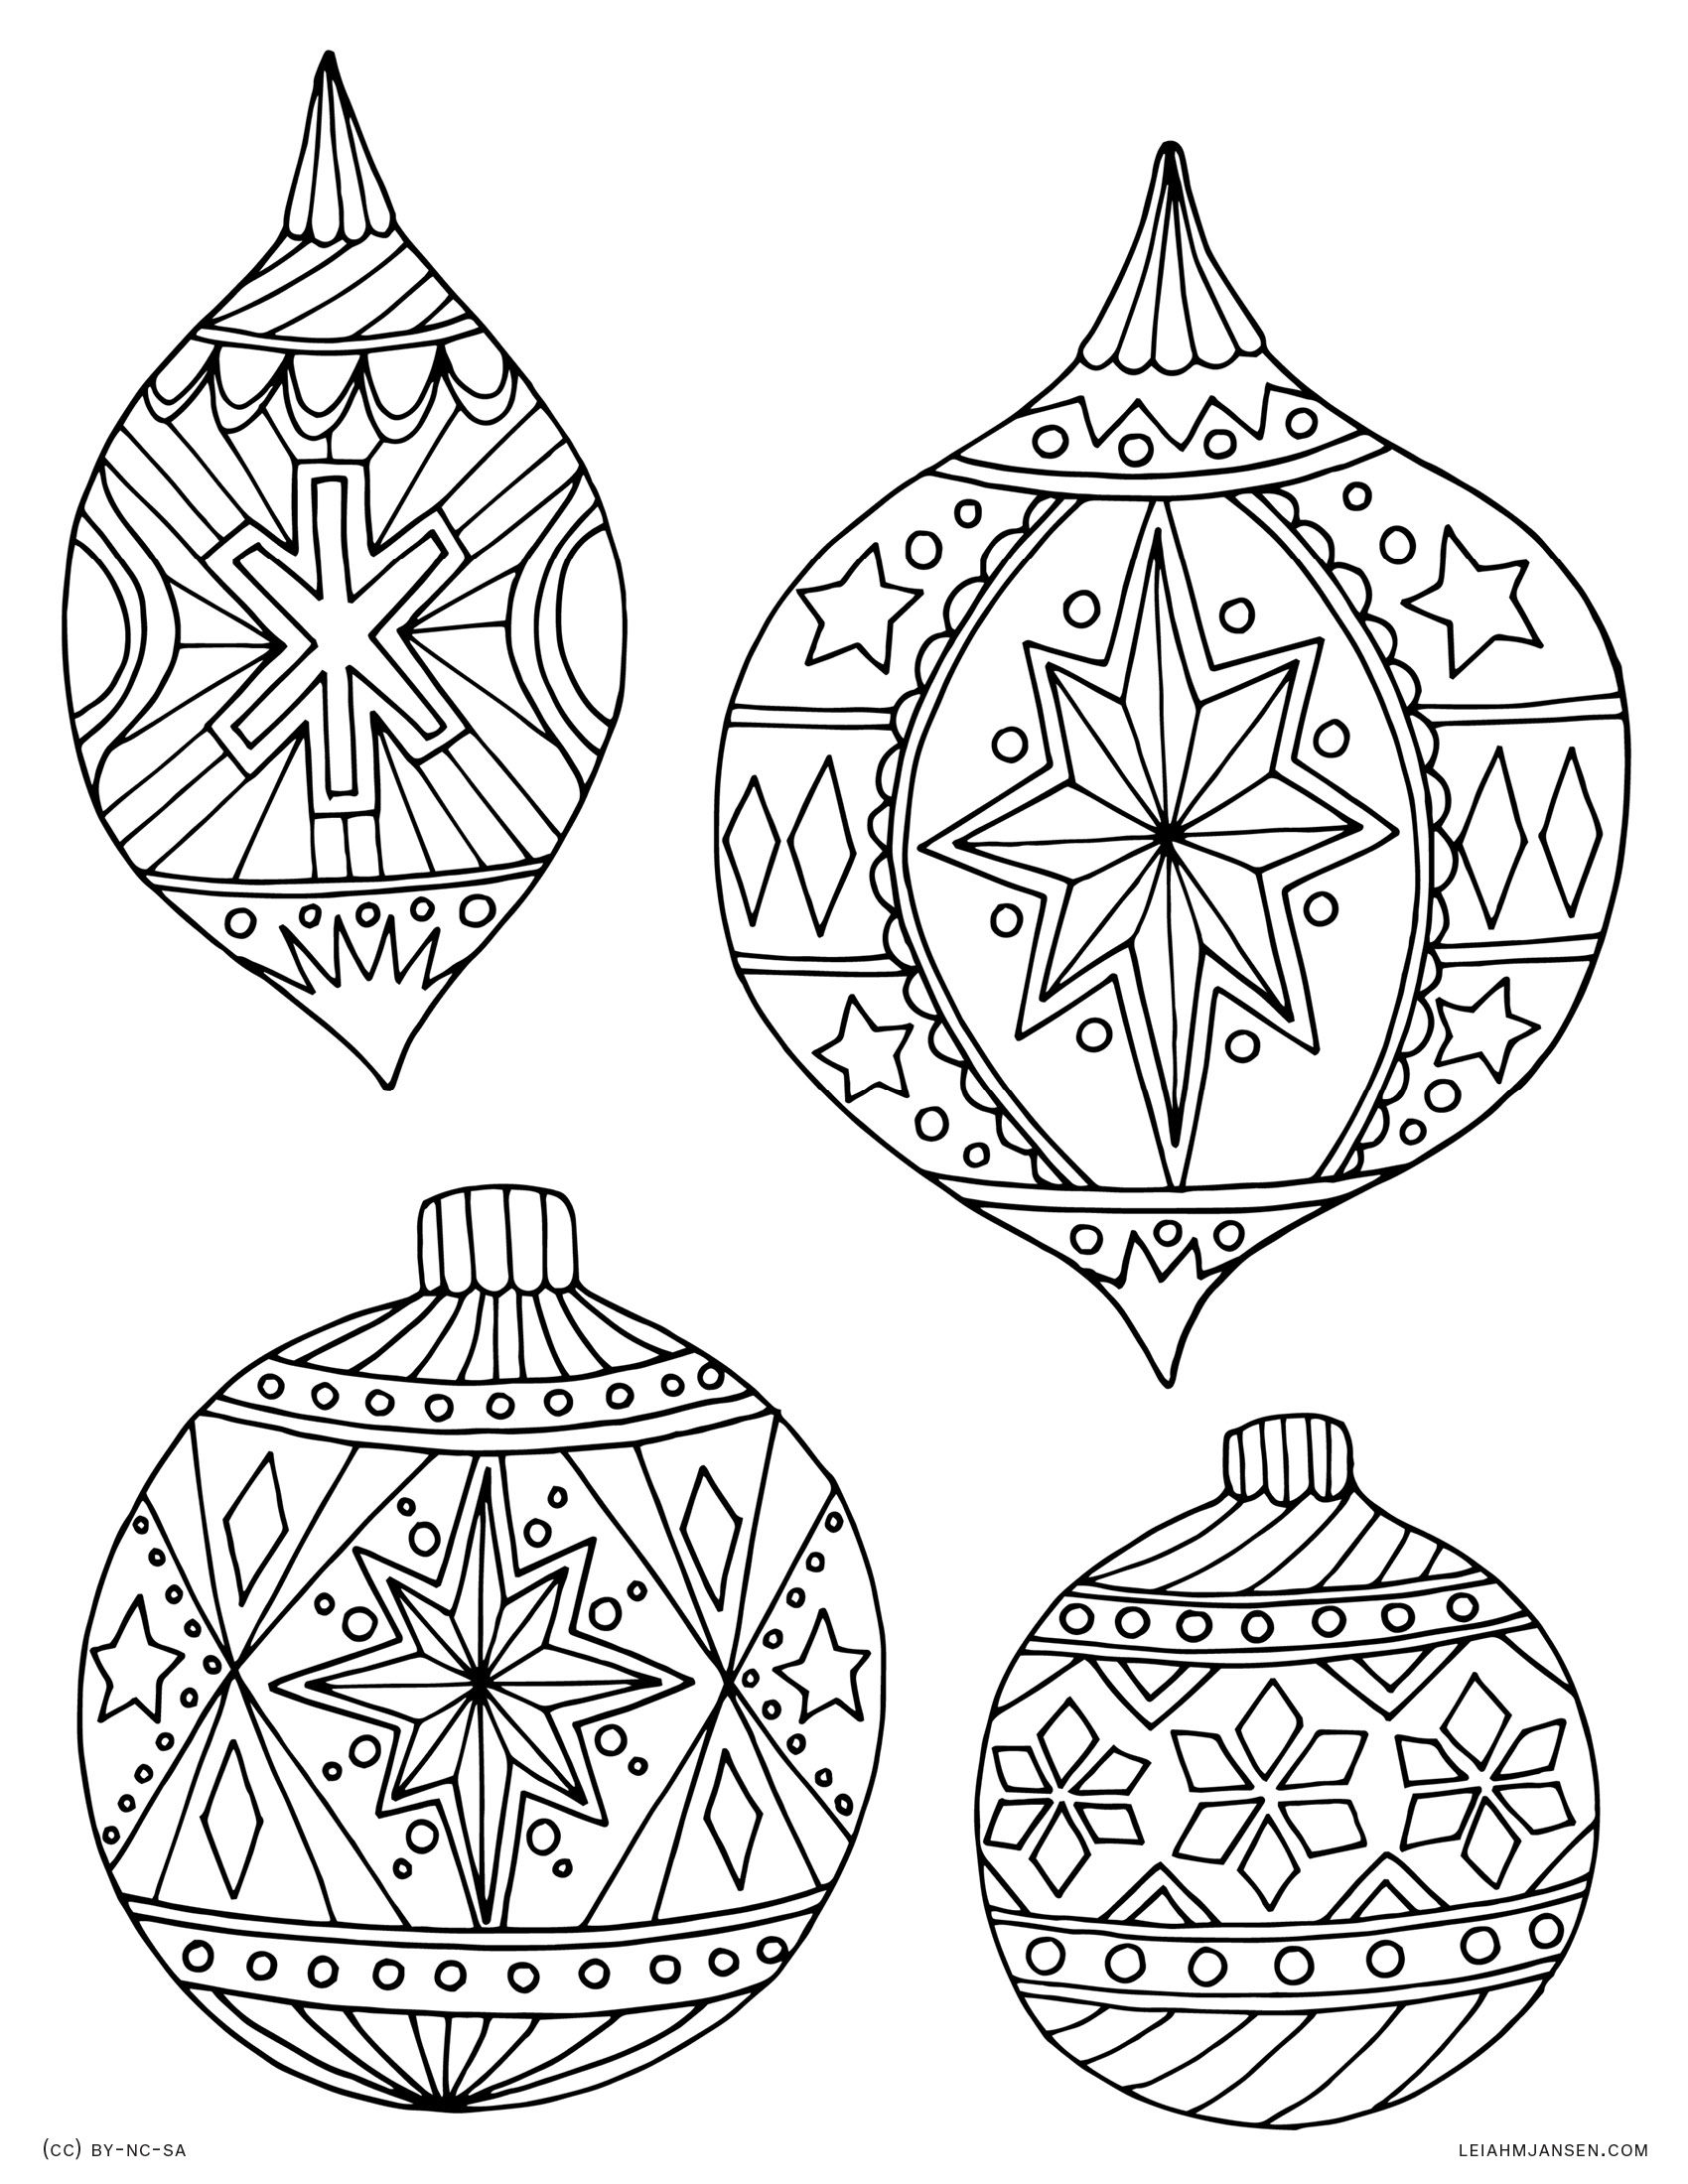 LMJ-coloring-page-holiday-ornaments.jpg (1700×2200) | Christmas ...